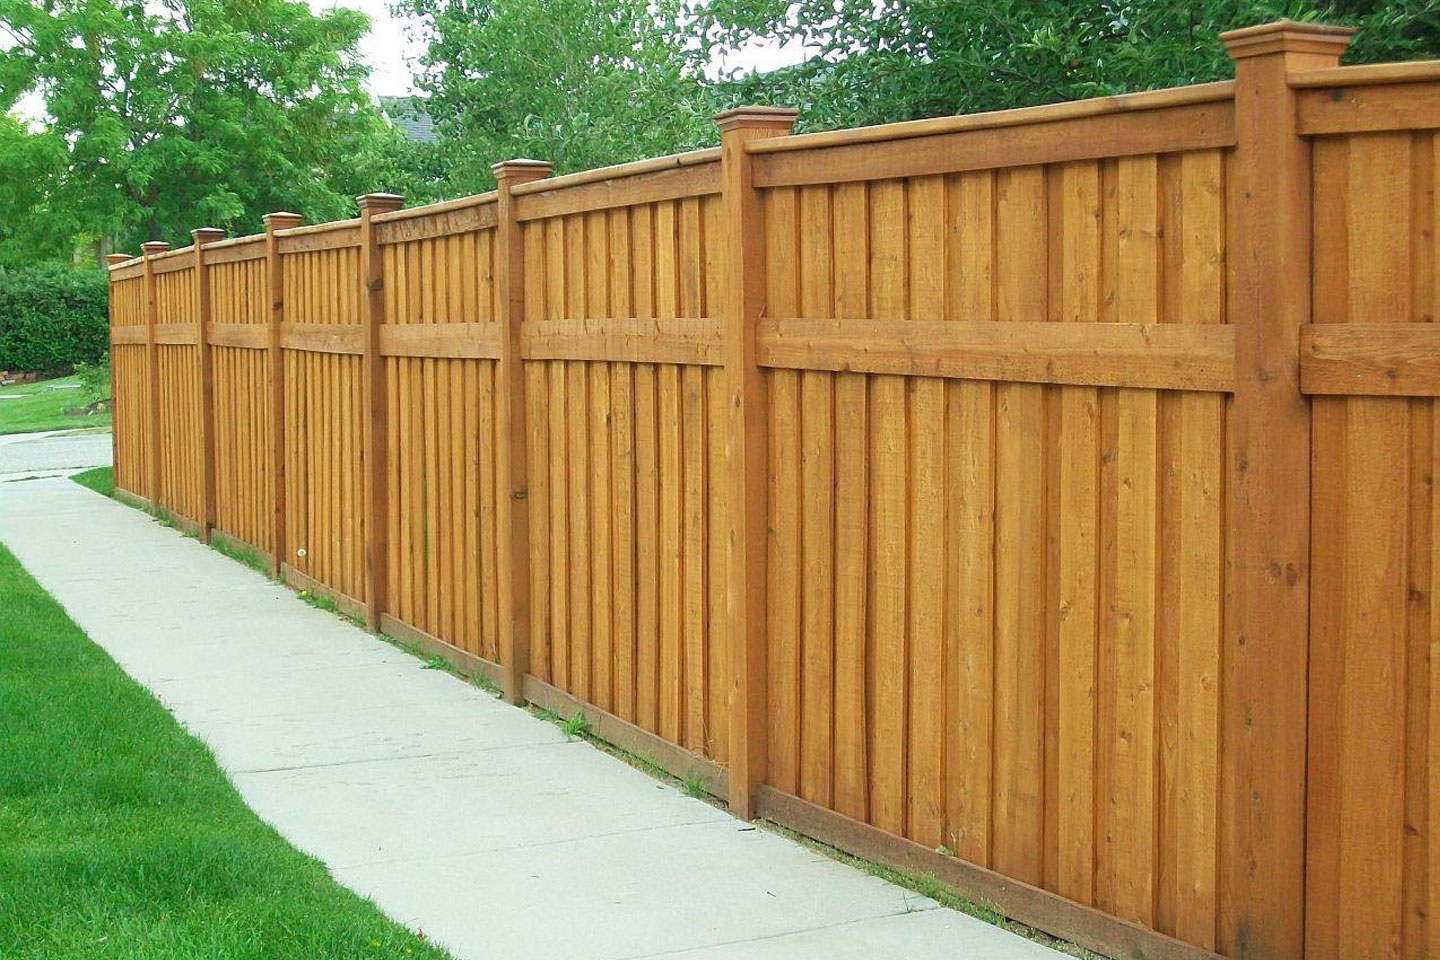 Privacy Fence Designs for Style & Seclusion | Freedonm ... on Decorations For Privacy Fence id=24389